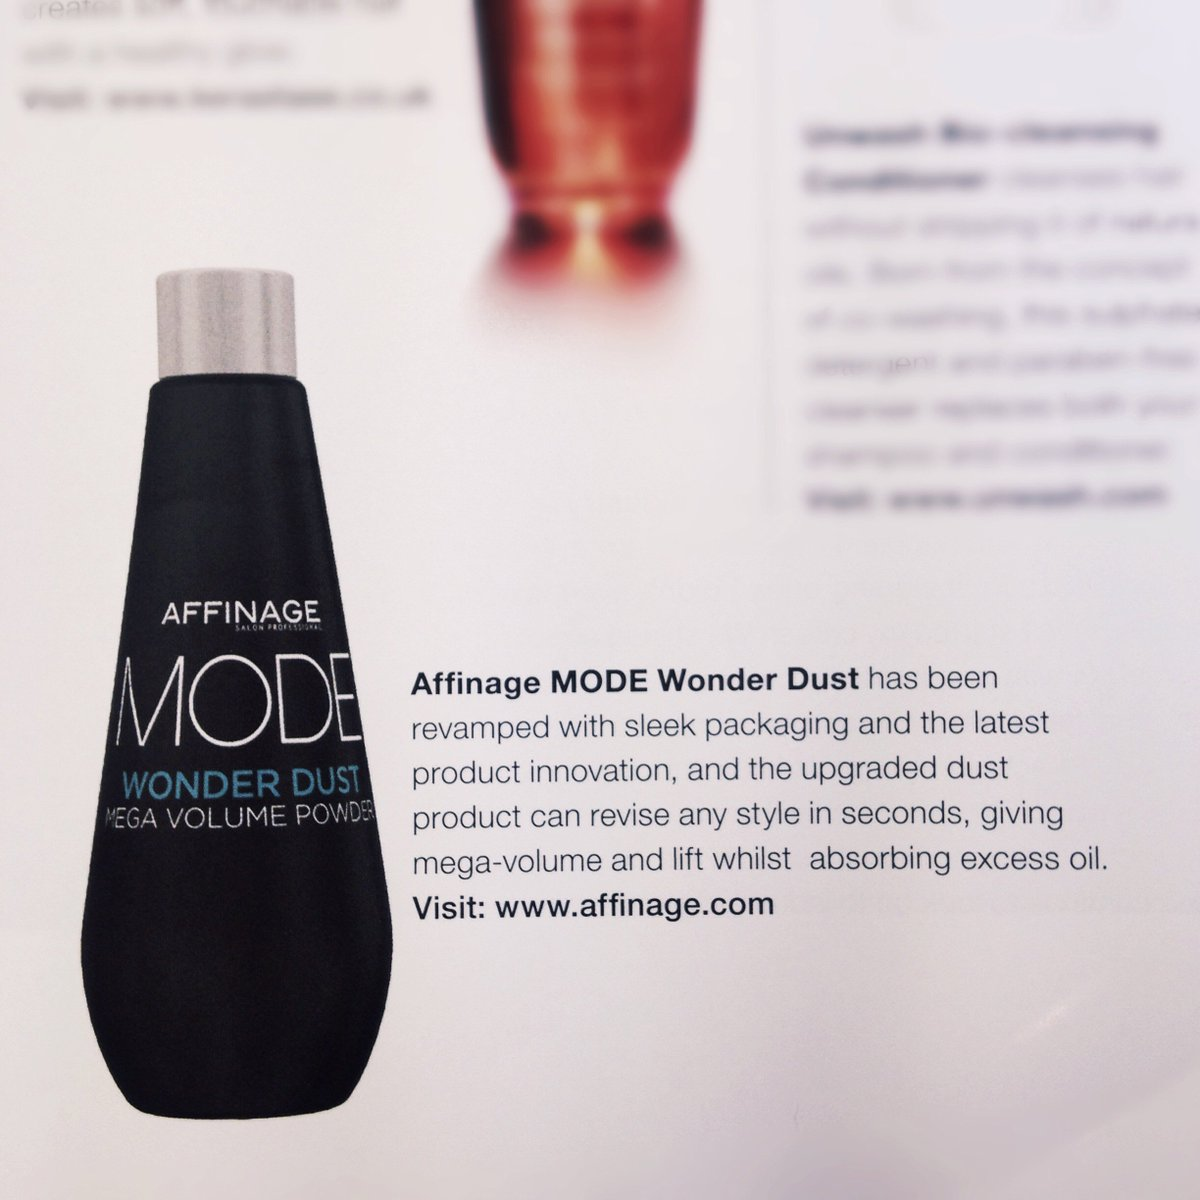 Spotted #Affinage #MODE #WonderDust in the @haircouncil mag Summer issue!  #AffinageStyling #StylingProducts #MODEStyling<br>http://pic.twitter.com/qxYUPnqyxX